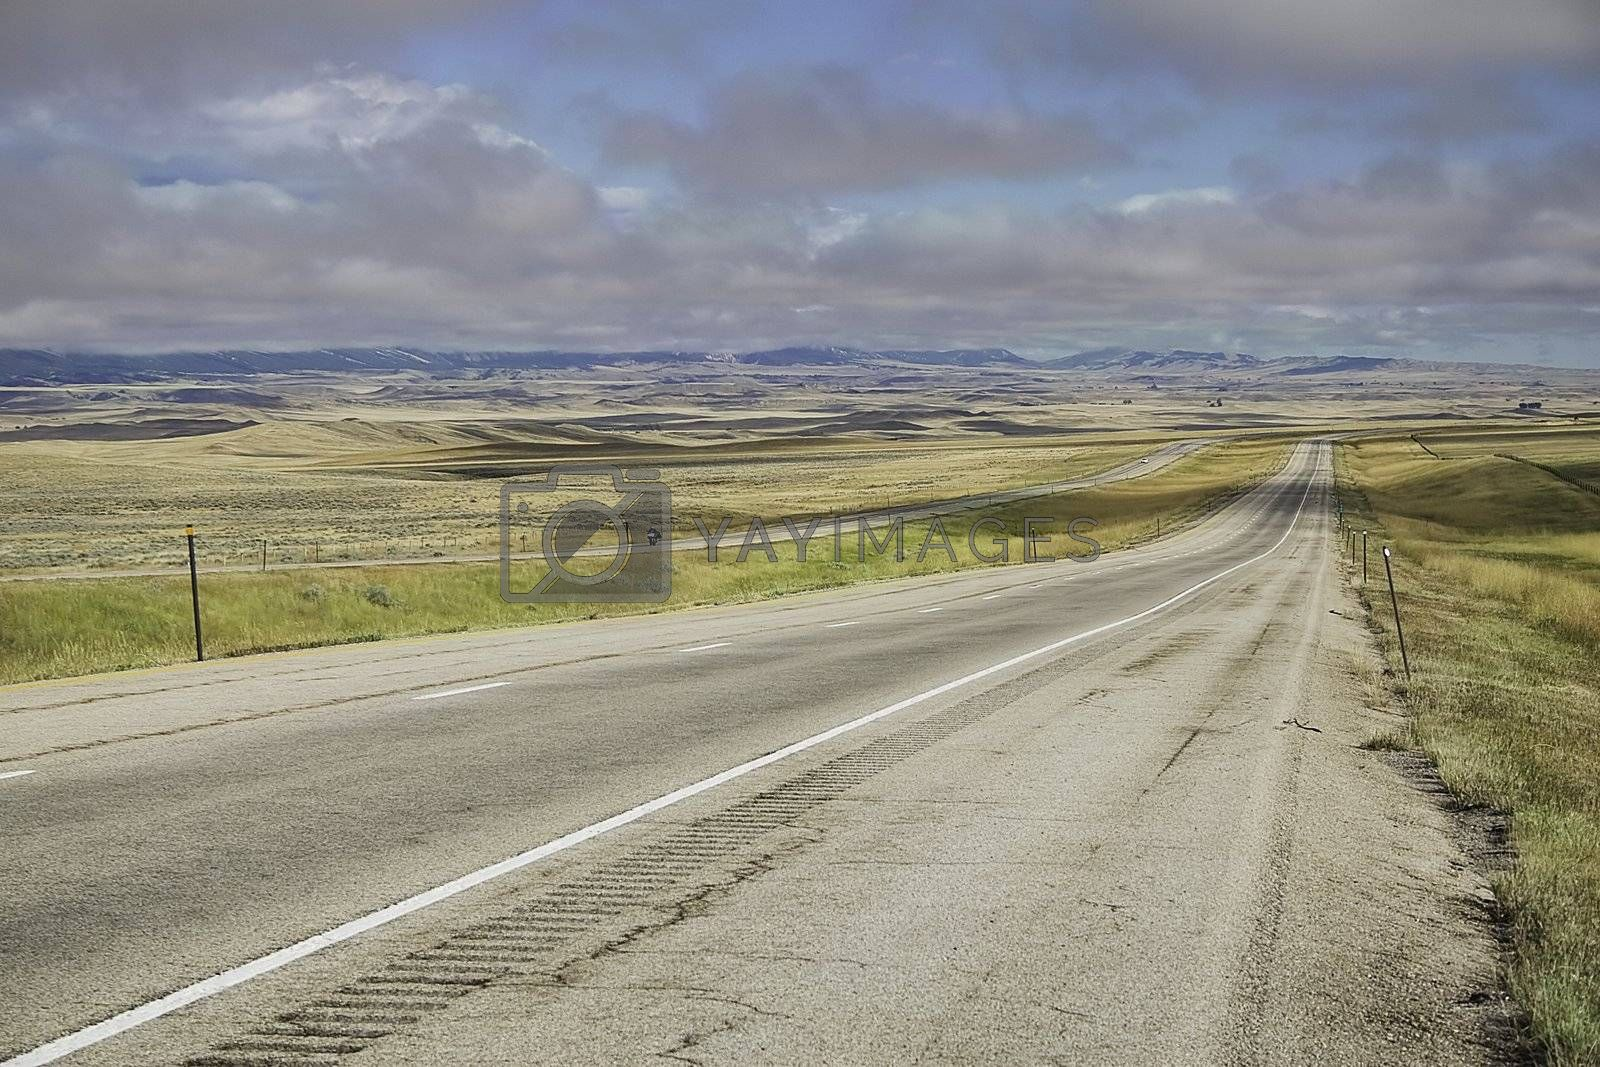 The interstate through Montana with a low cloud ceiling on a summer day.